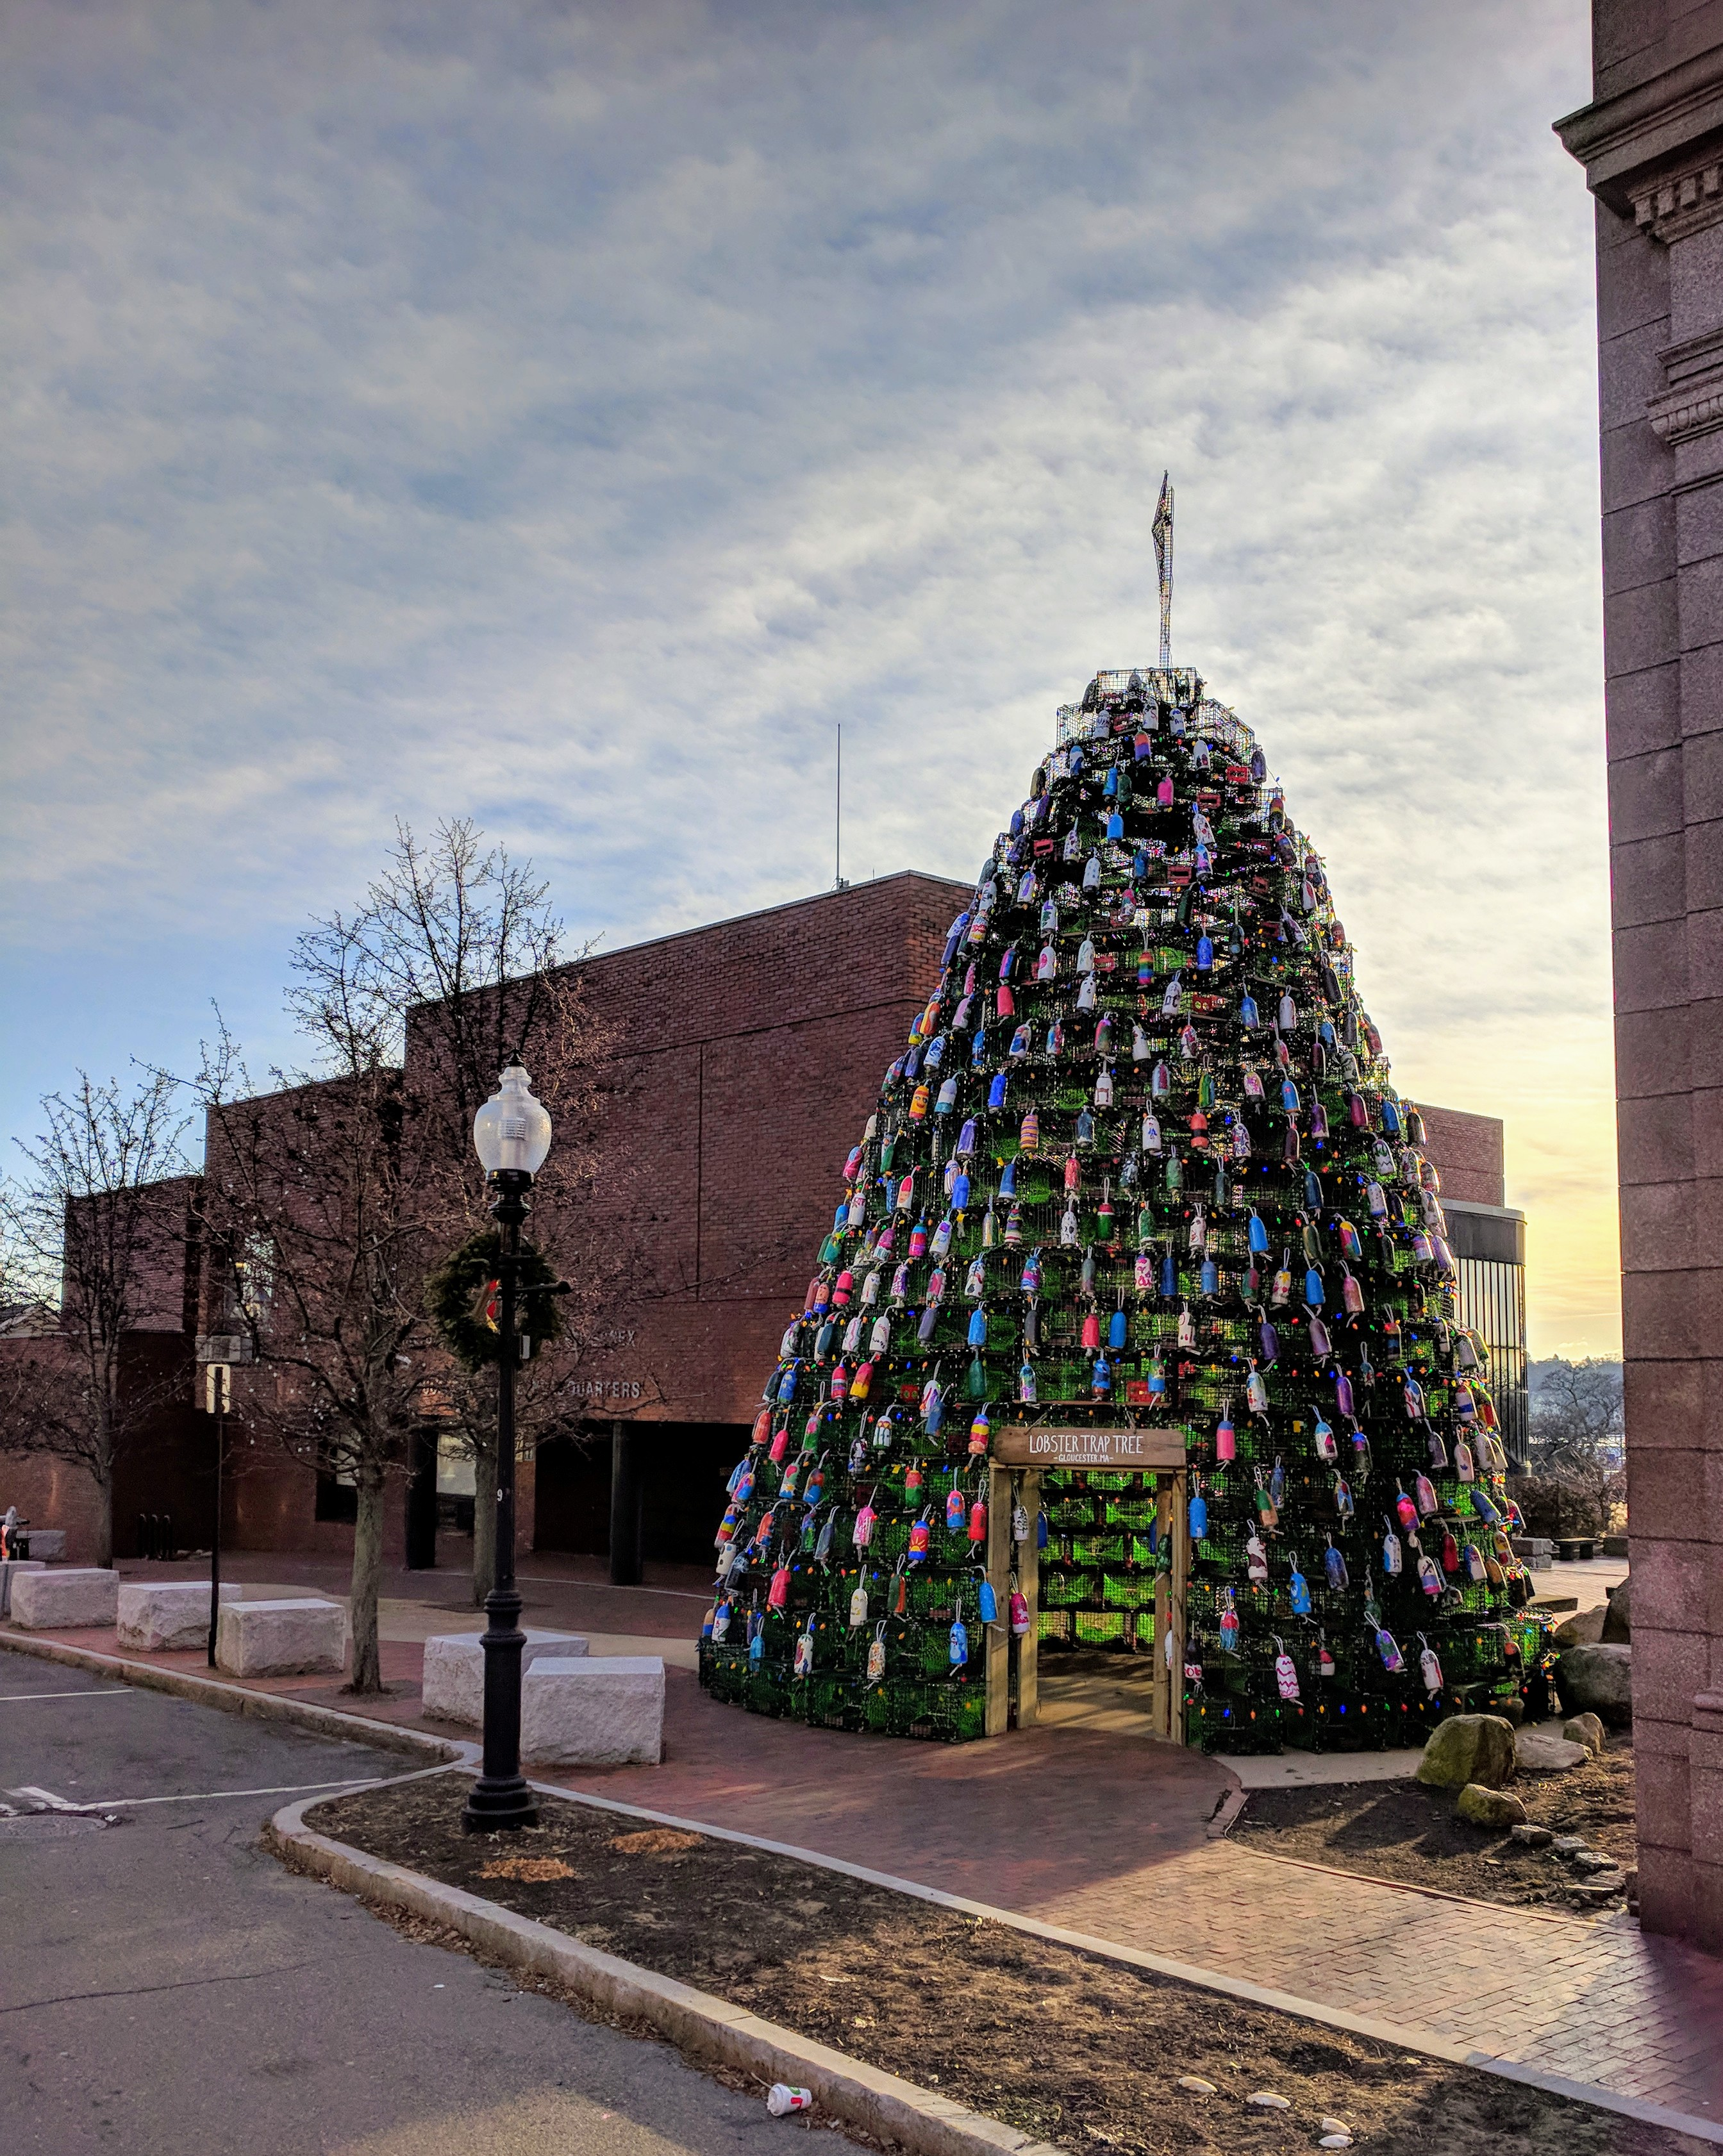 gather round_one Sunday morning lobster trap tree_Gloucester MA_ looking east end of Main Street downtown_20181209©c ryan